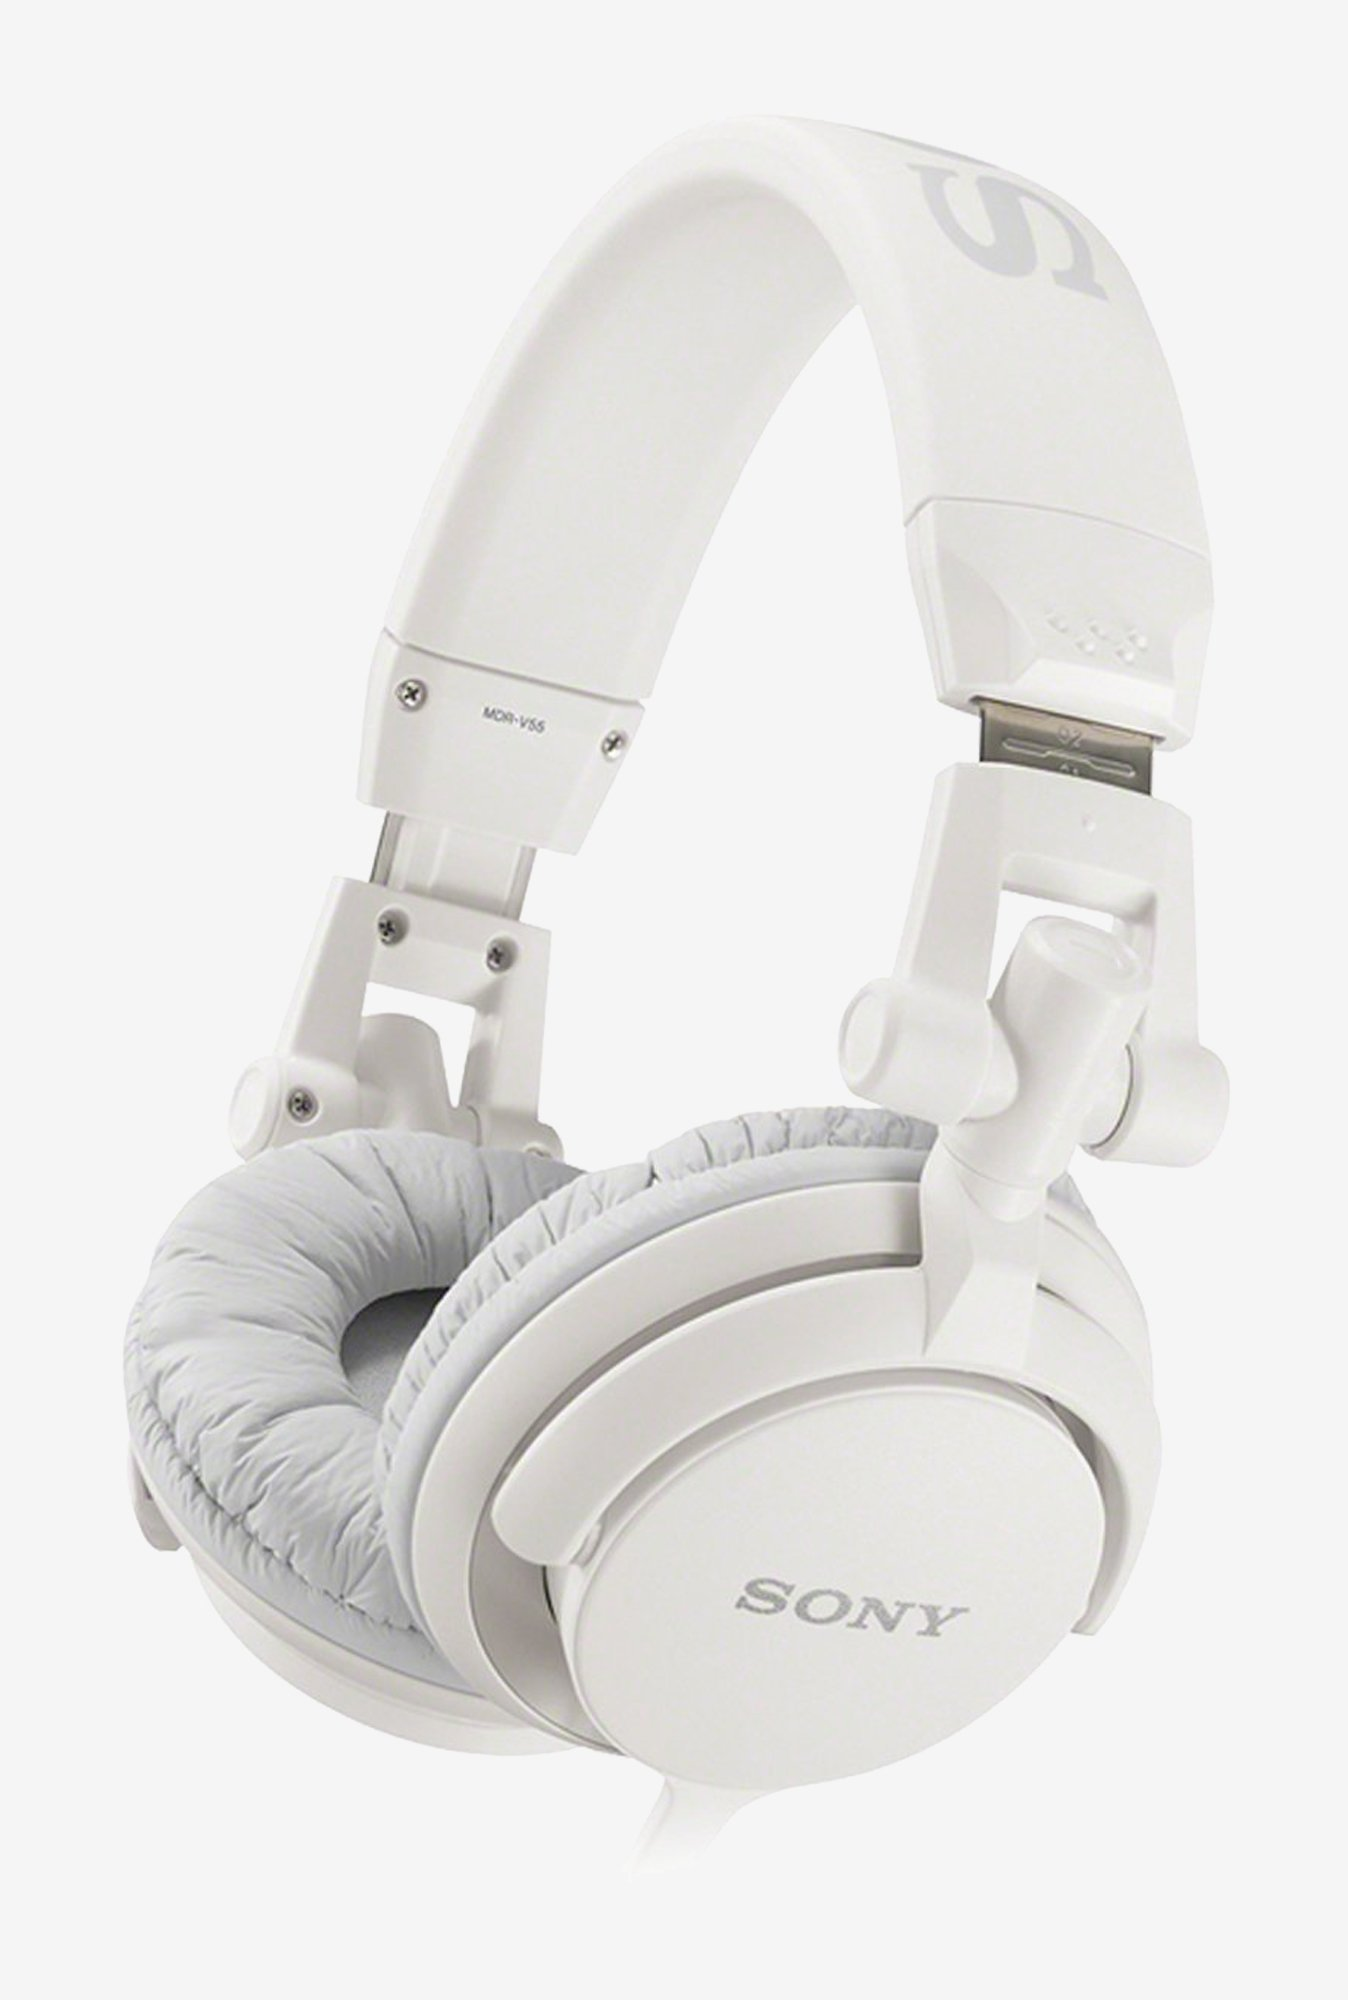 Sony MDR-V55/WC DJ  Headphones With Swivel Design (White)